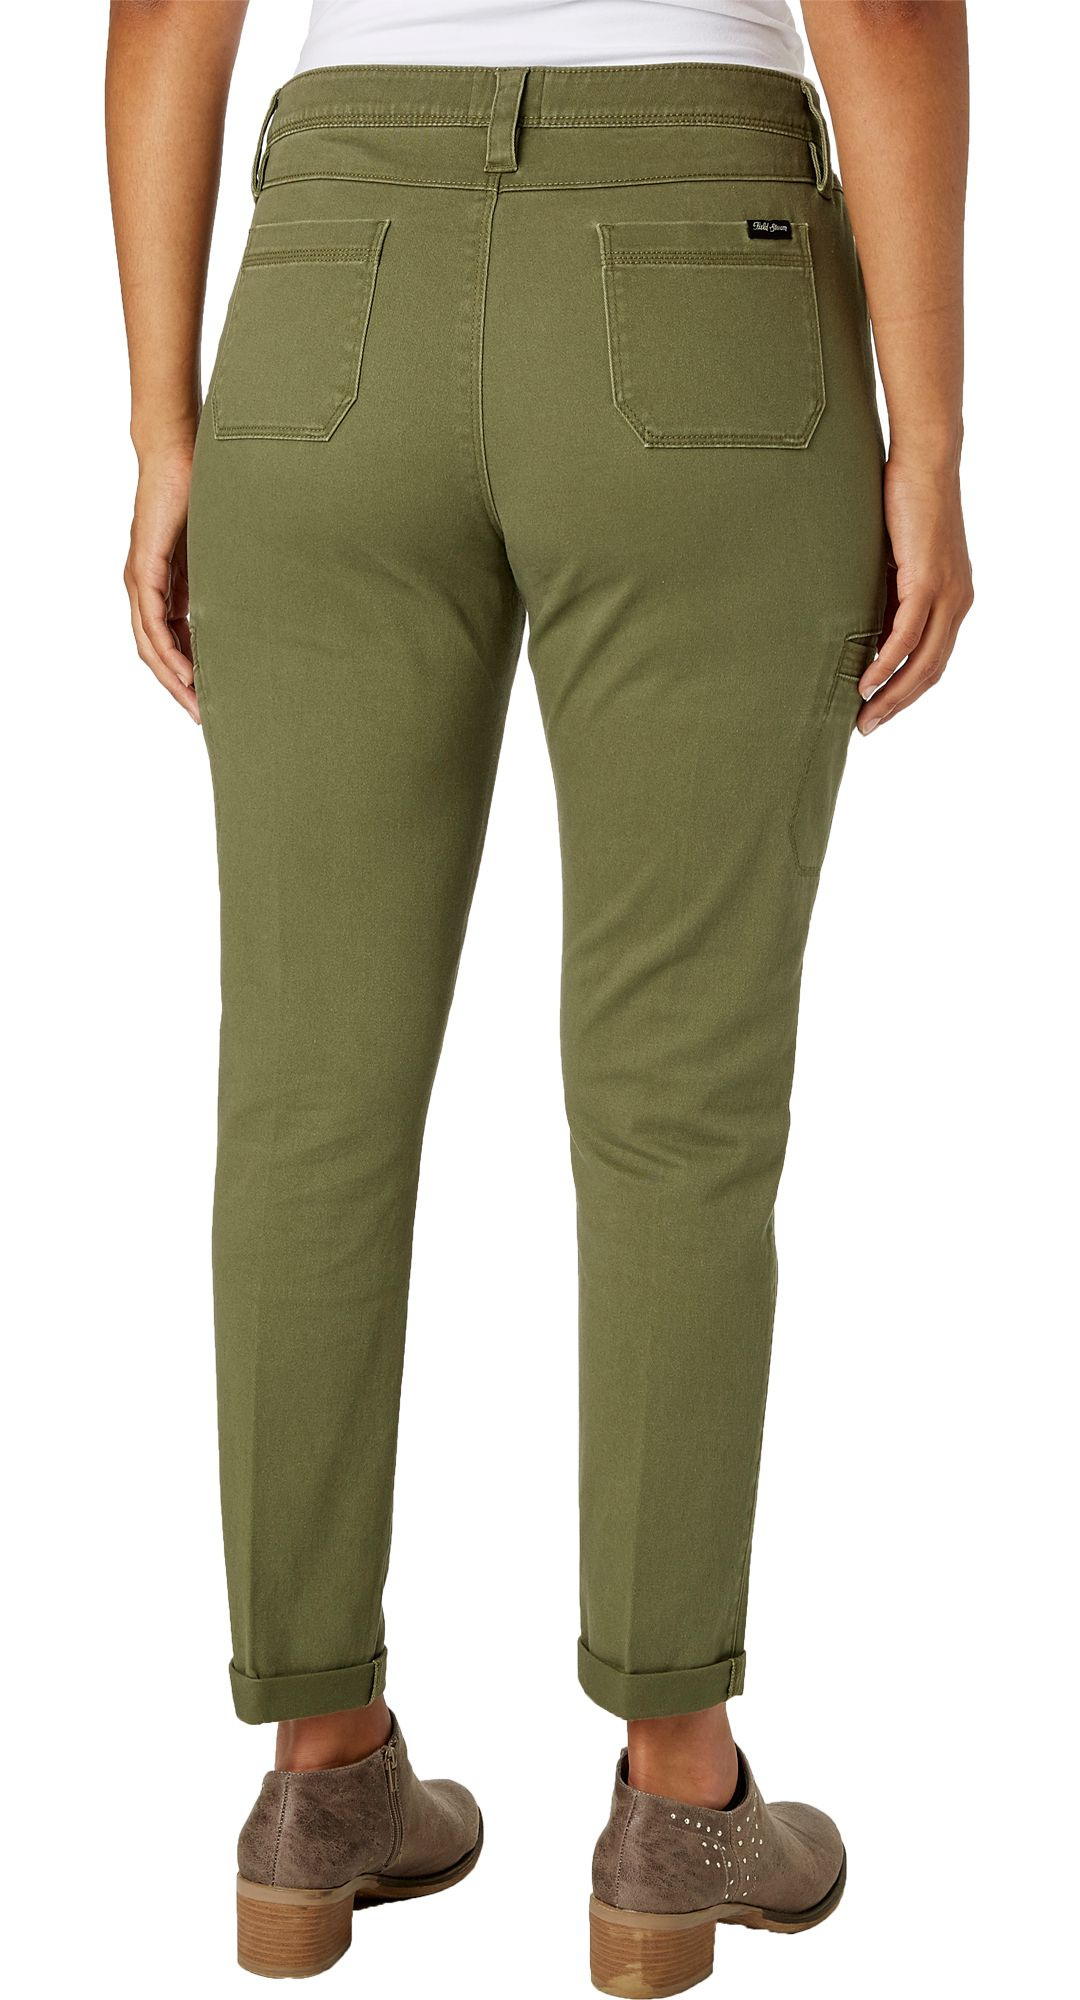 669daad2542741 Field & Stream Women's Utility Pants | DICK'S Sporting Goods